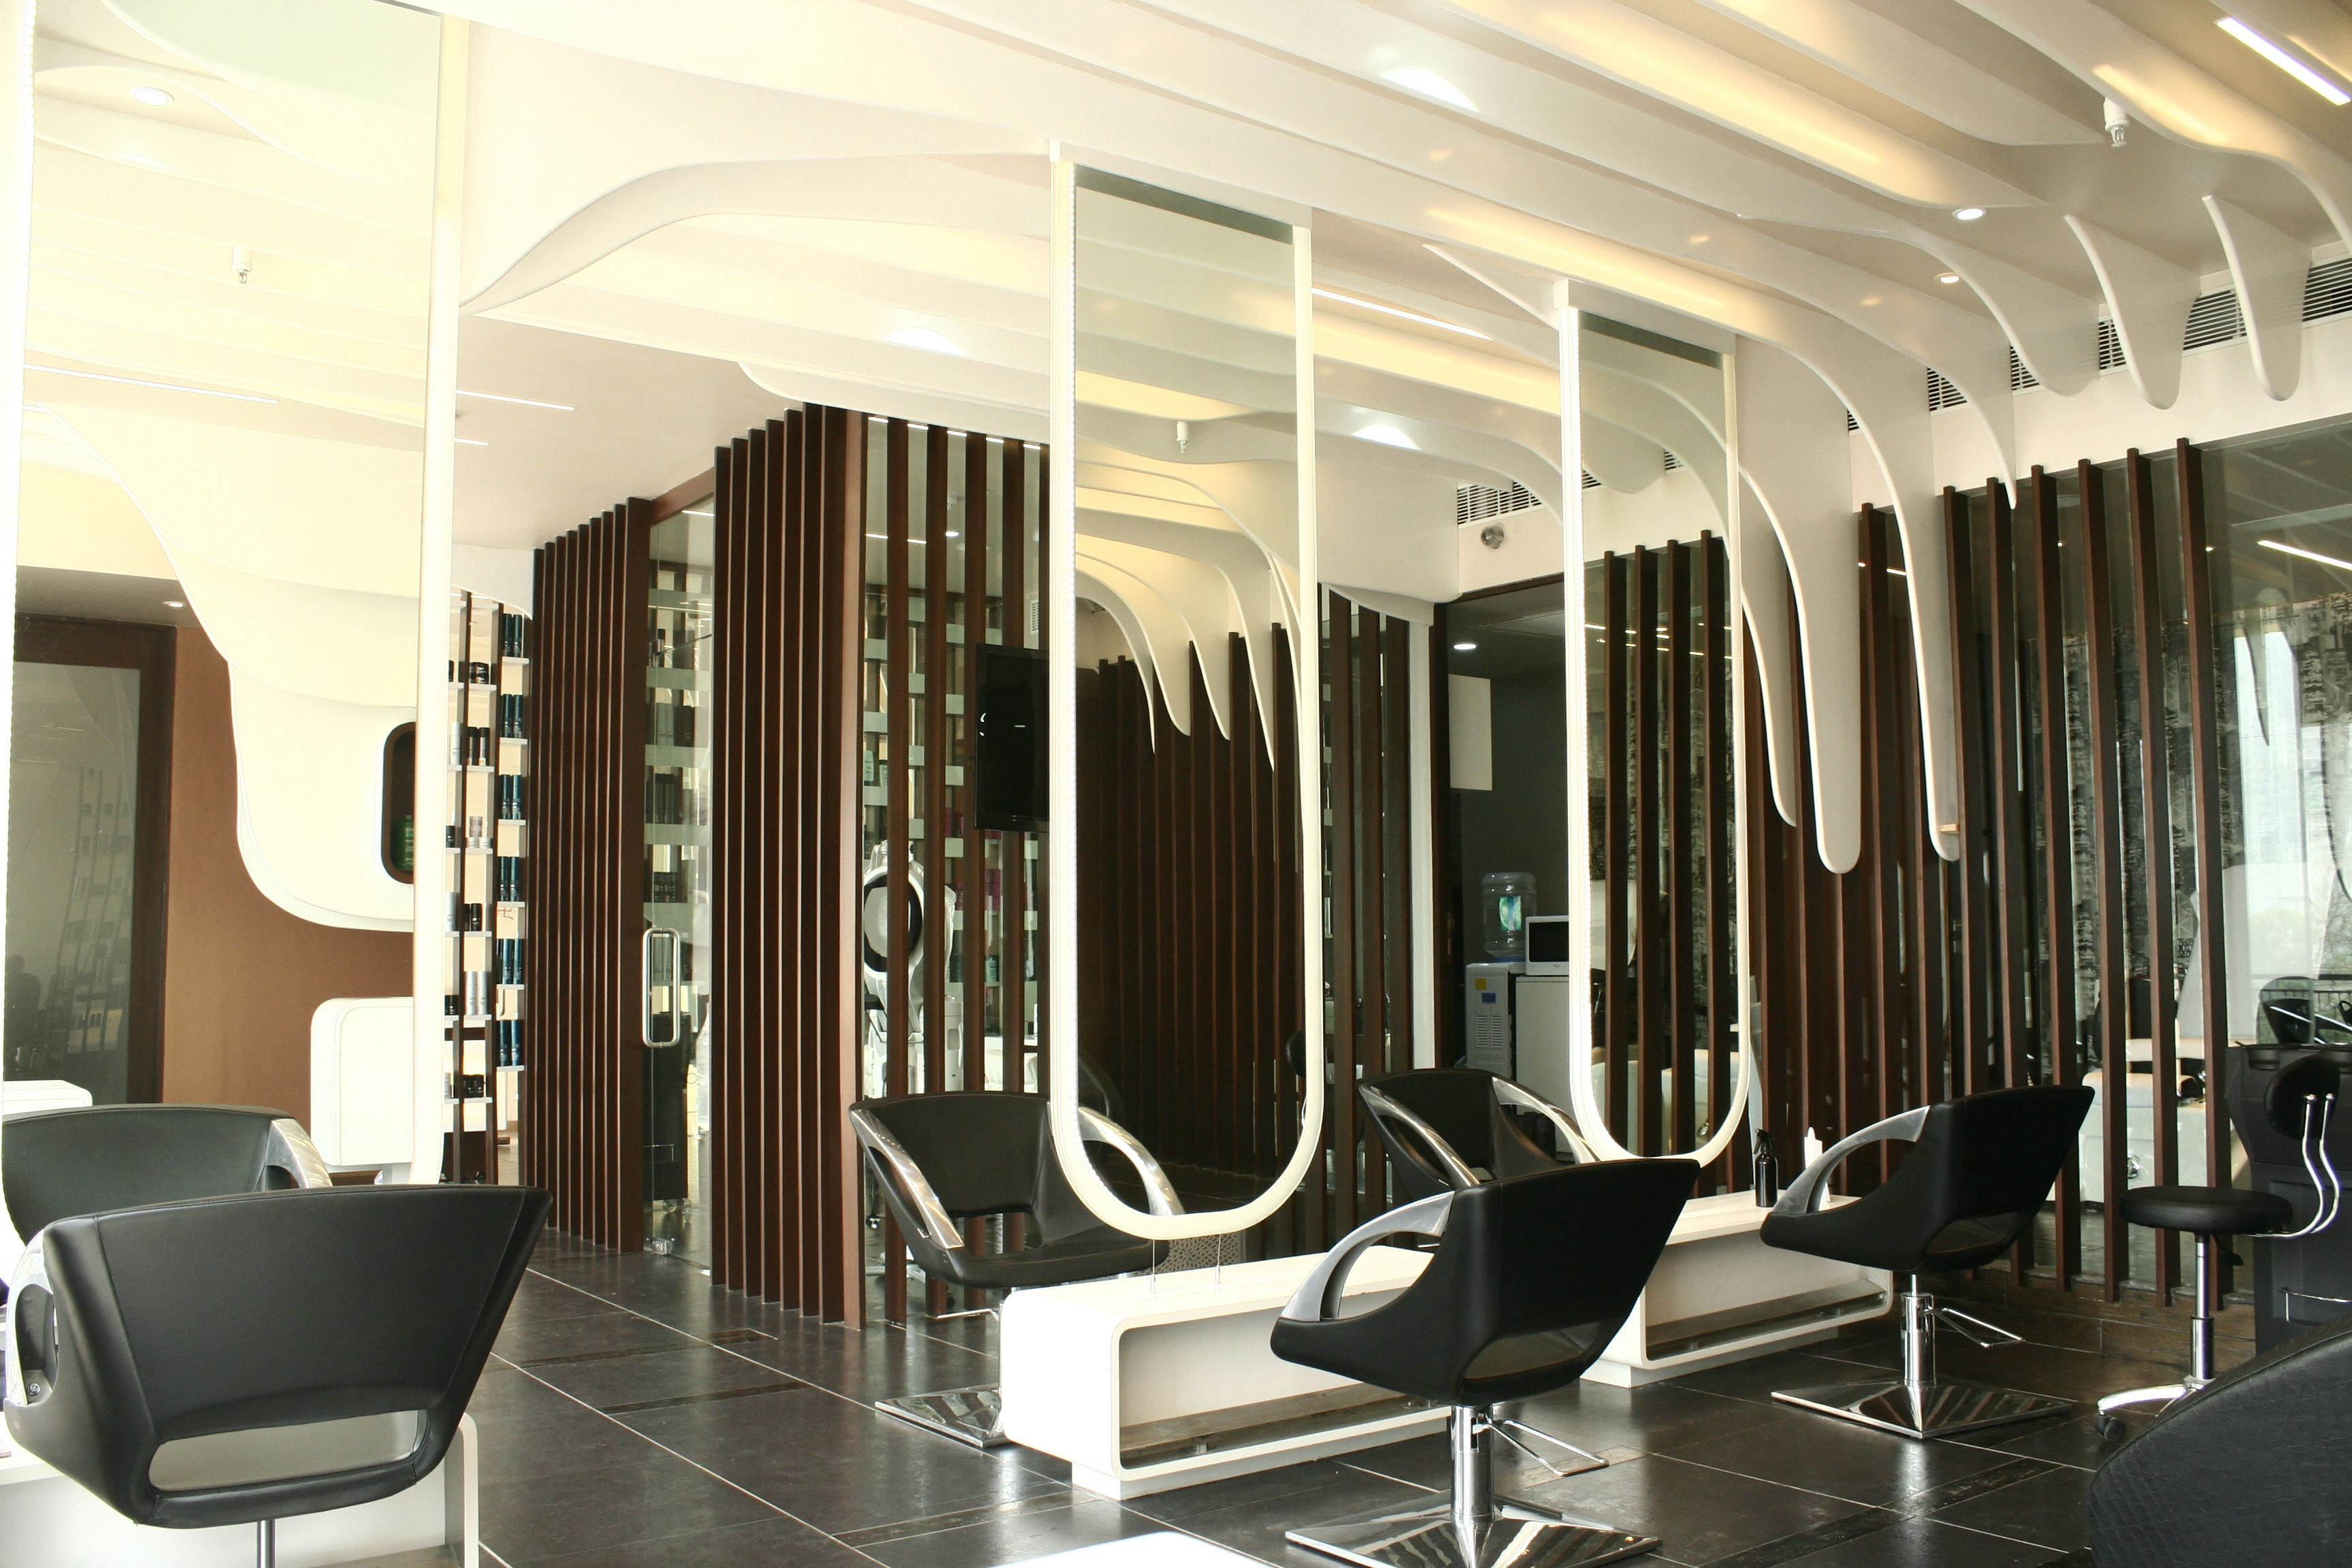 Charming Architecture And Interior Design Projects In India   Toni U0026 Guy Salon At  Gurgaon   Manish